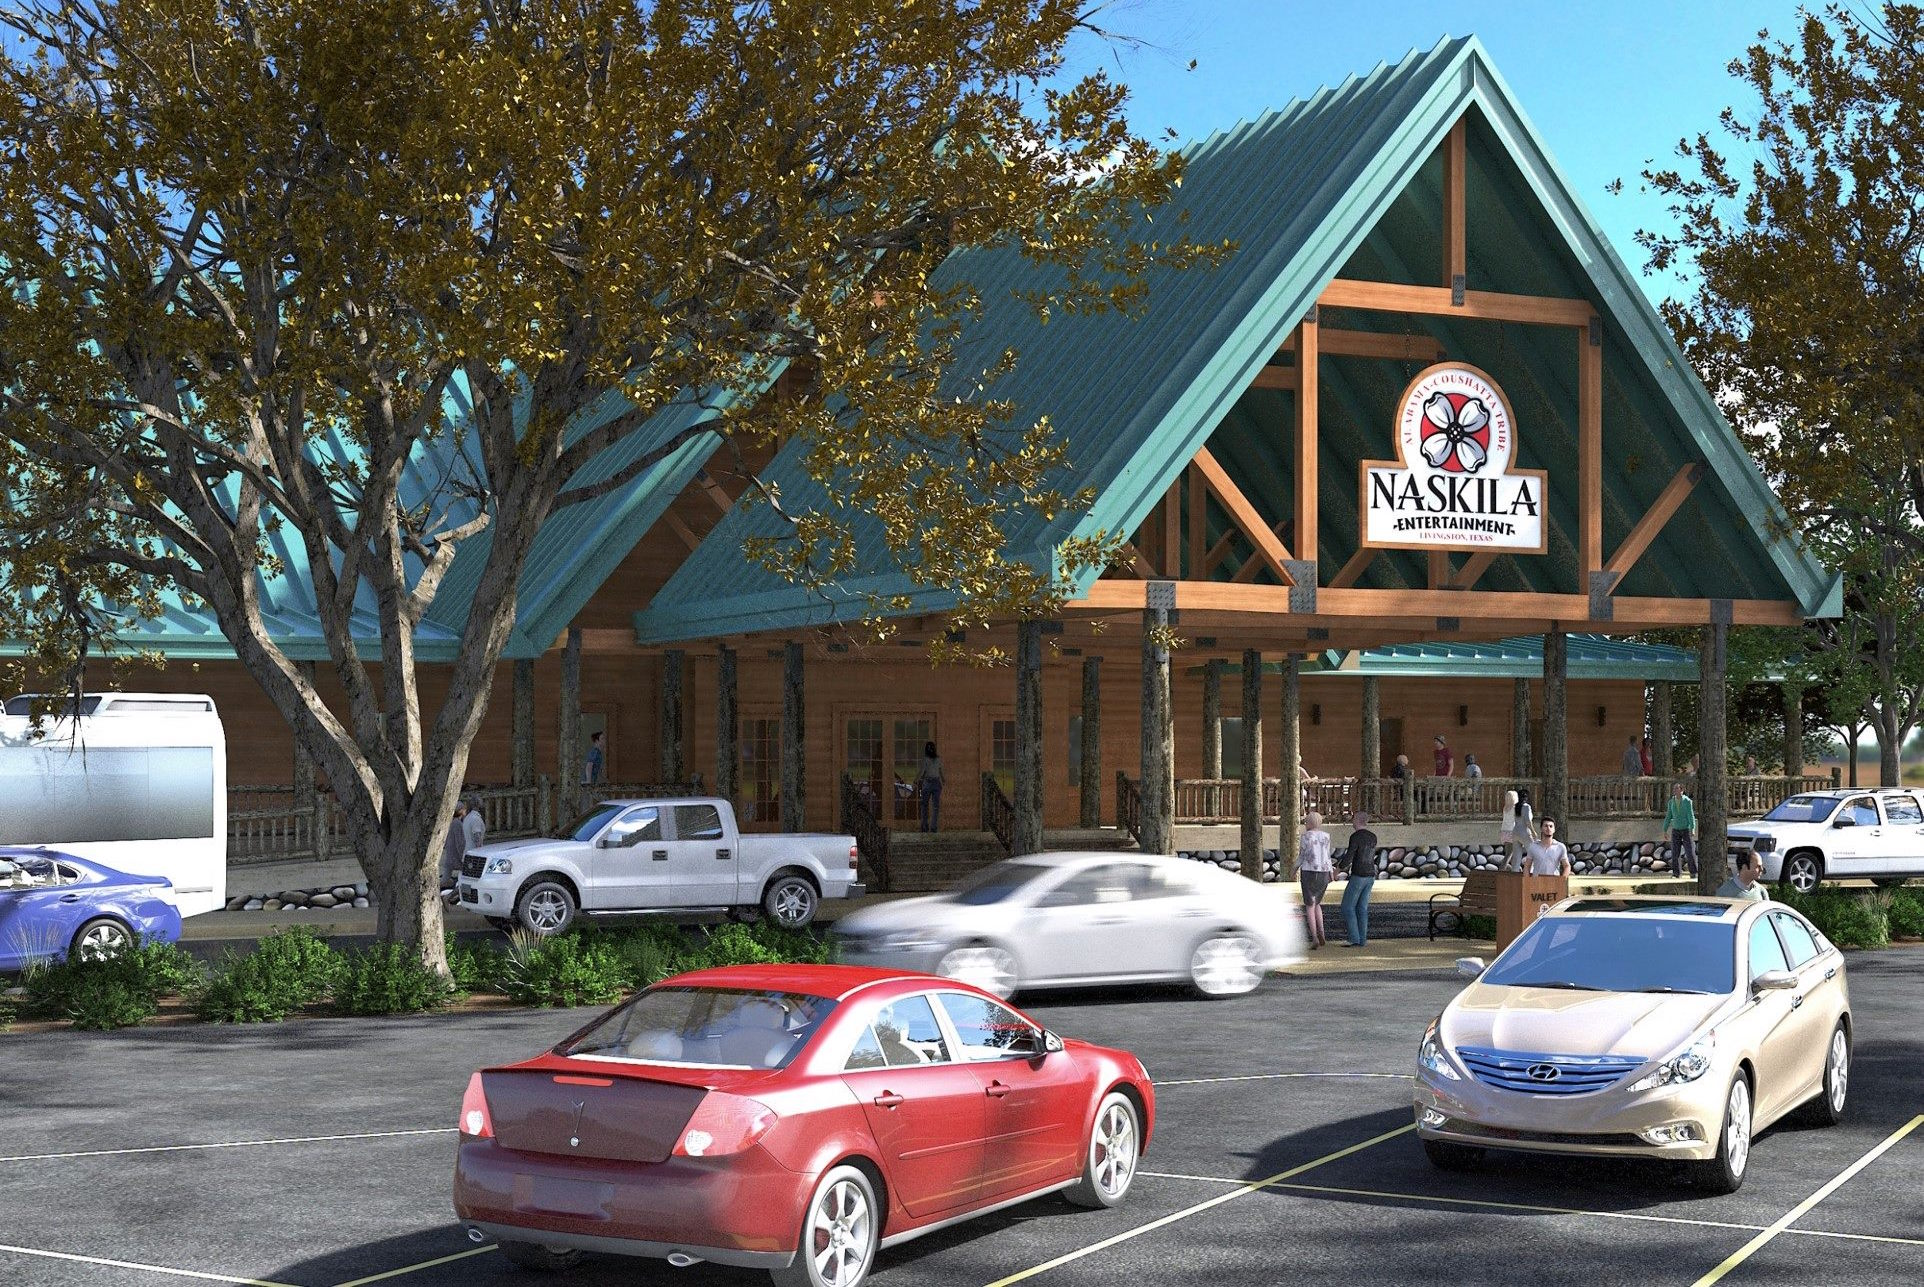 Alabama-Coushatta Tribe schedules job fair as casino debut nears